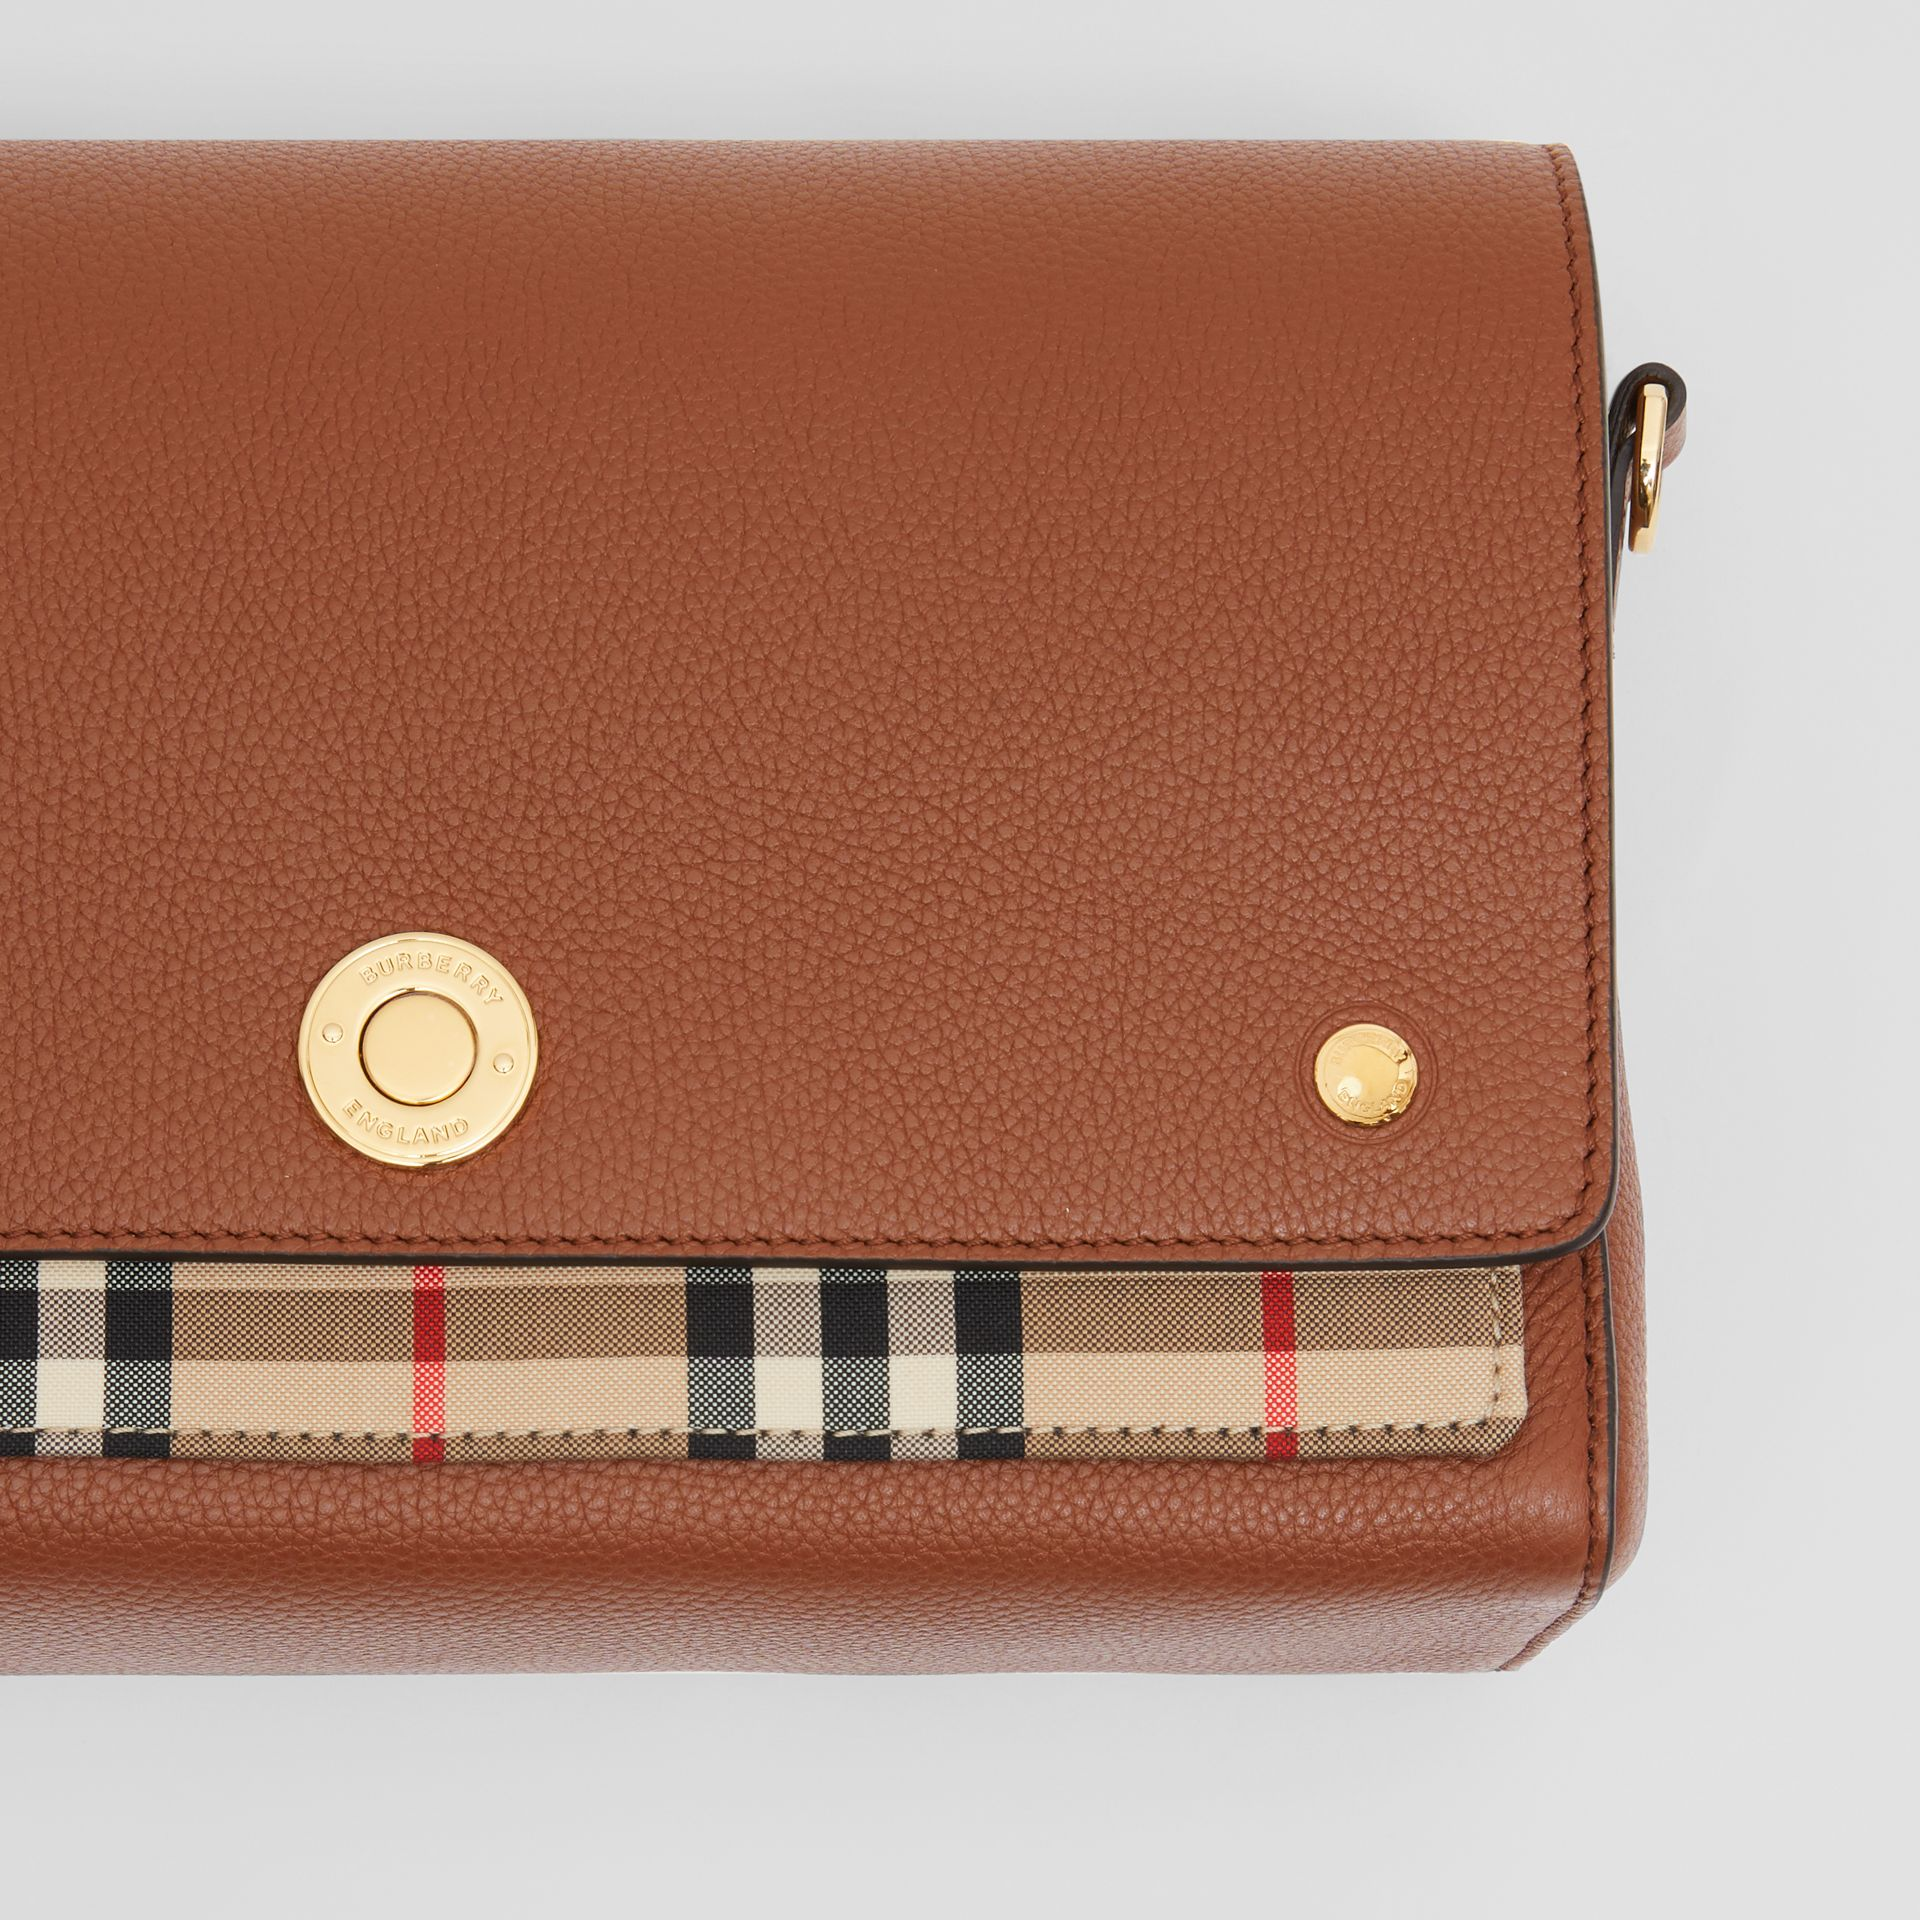 Leather and Vintage Check Note Crossbody Bag in Tan - Women | Burberry - gallery image 1